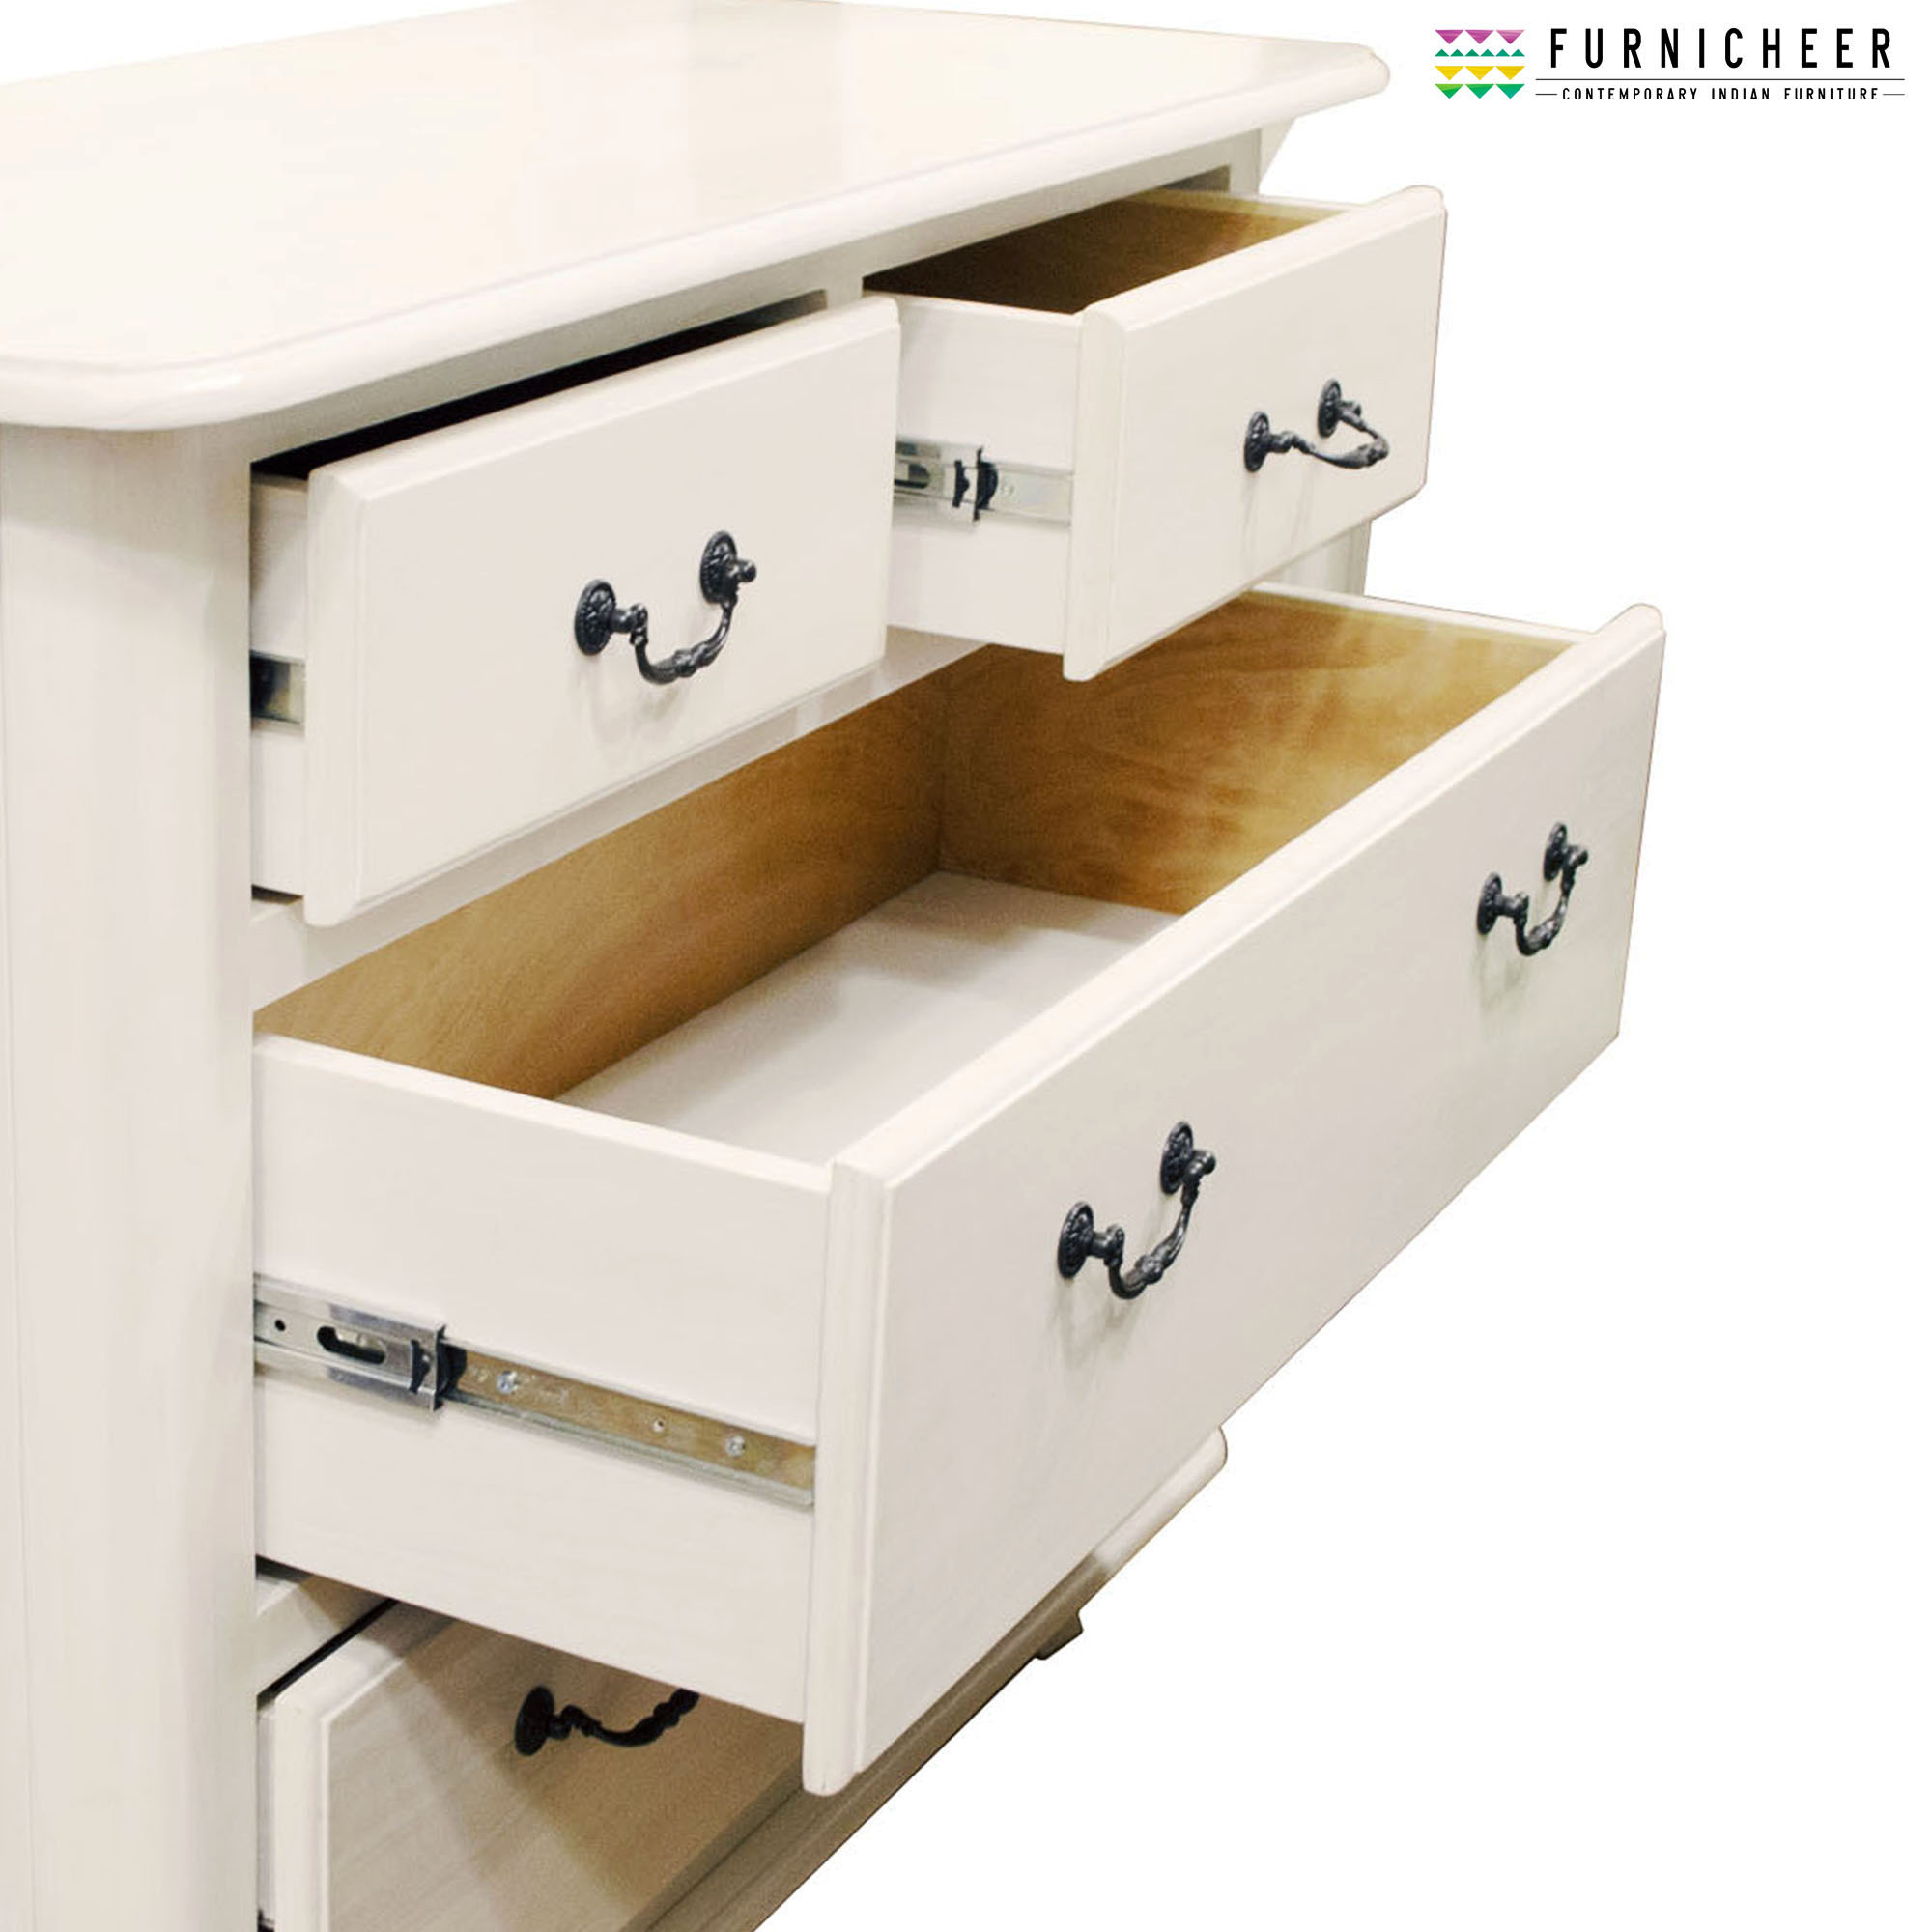 2.CHEST OF DRAWER SKU CDWT0001